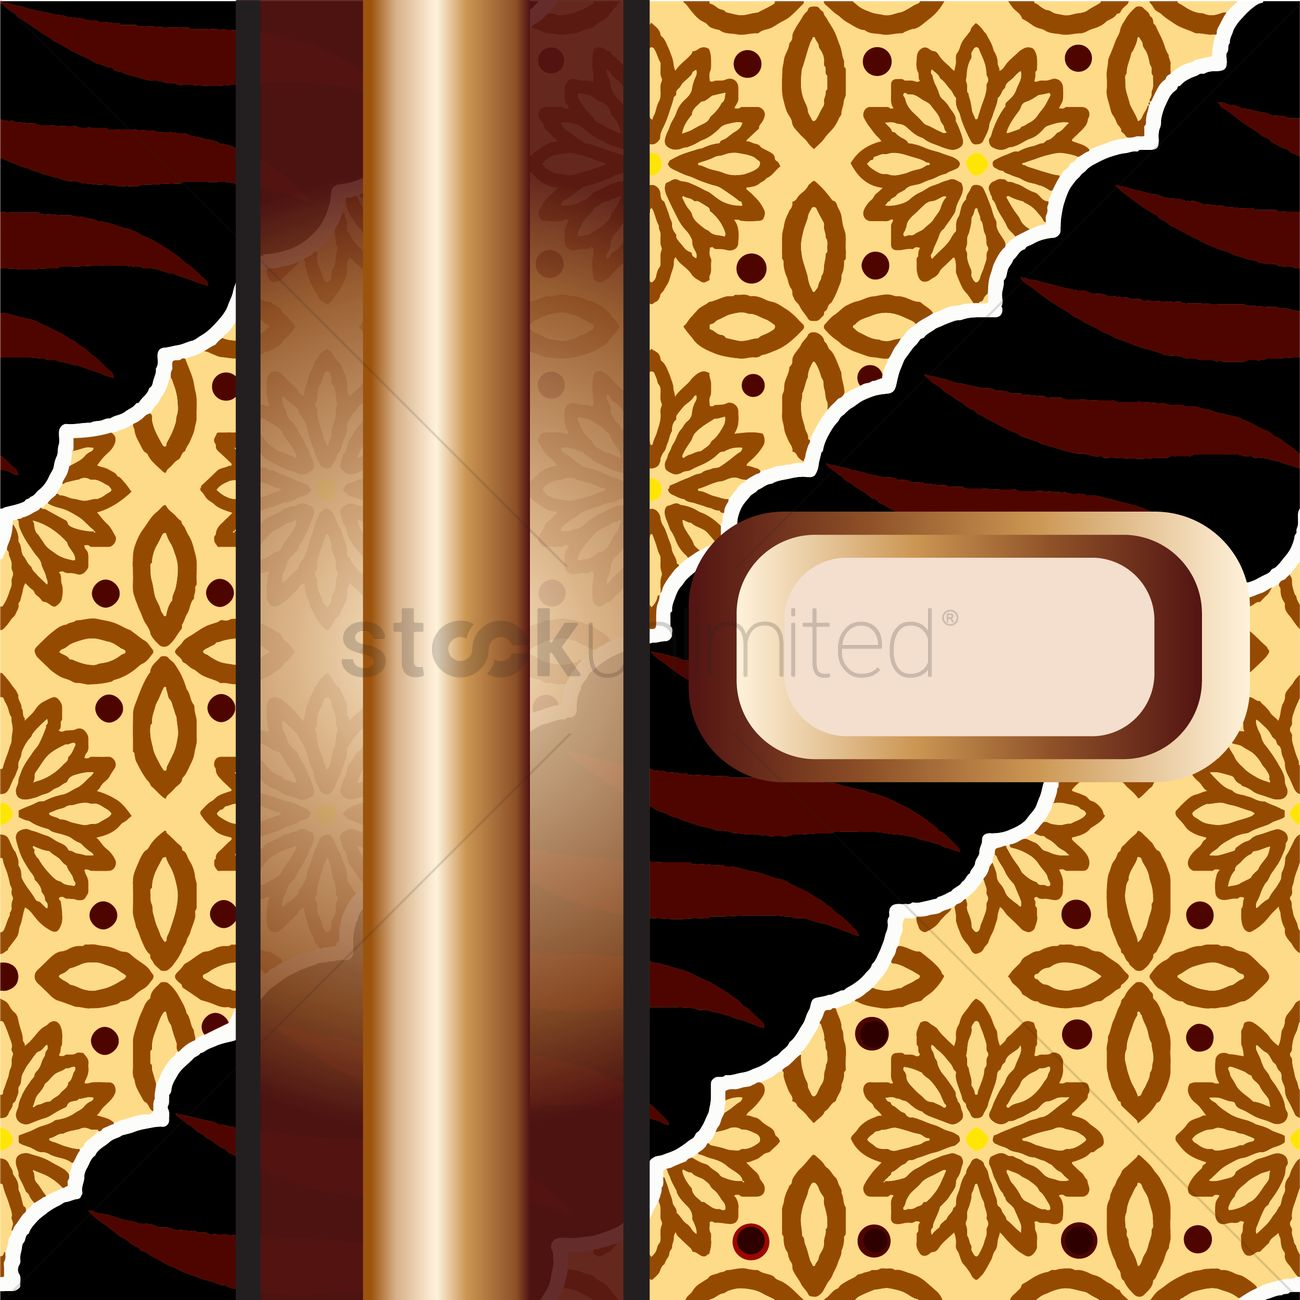 batik background with copyspace vector image 1447695 stockunlimited batik background with copyspace vector